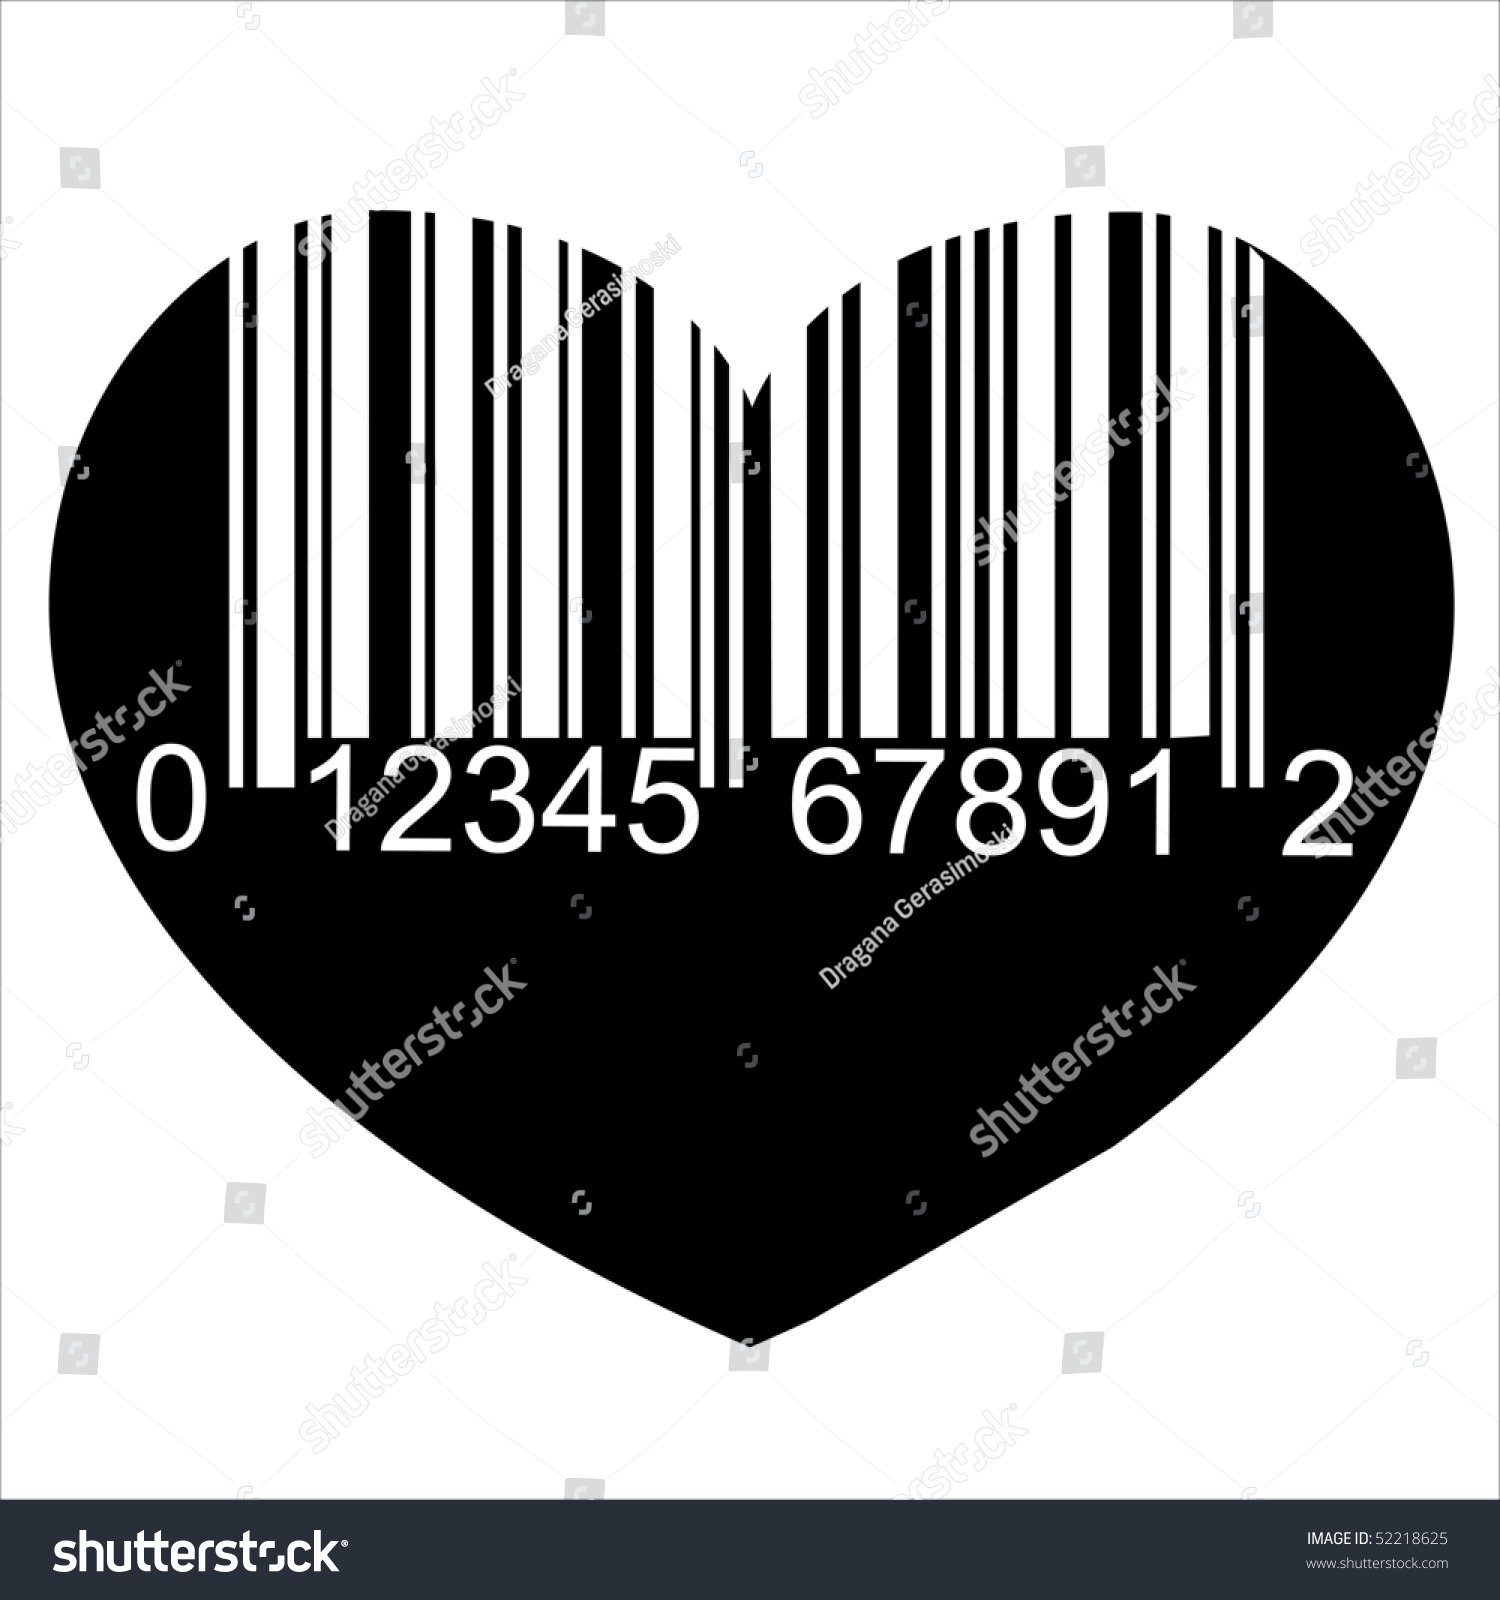 Heart barcode icon love symbol useful stock illustration 52218625 heart barcode icon love symbol useful bar code for valentines day isolated over buycottarizona Choice Image